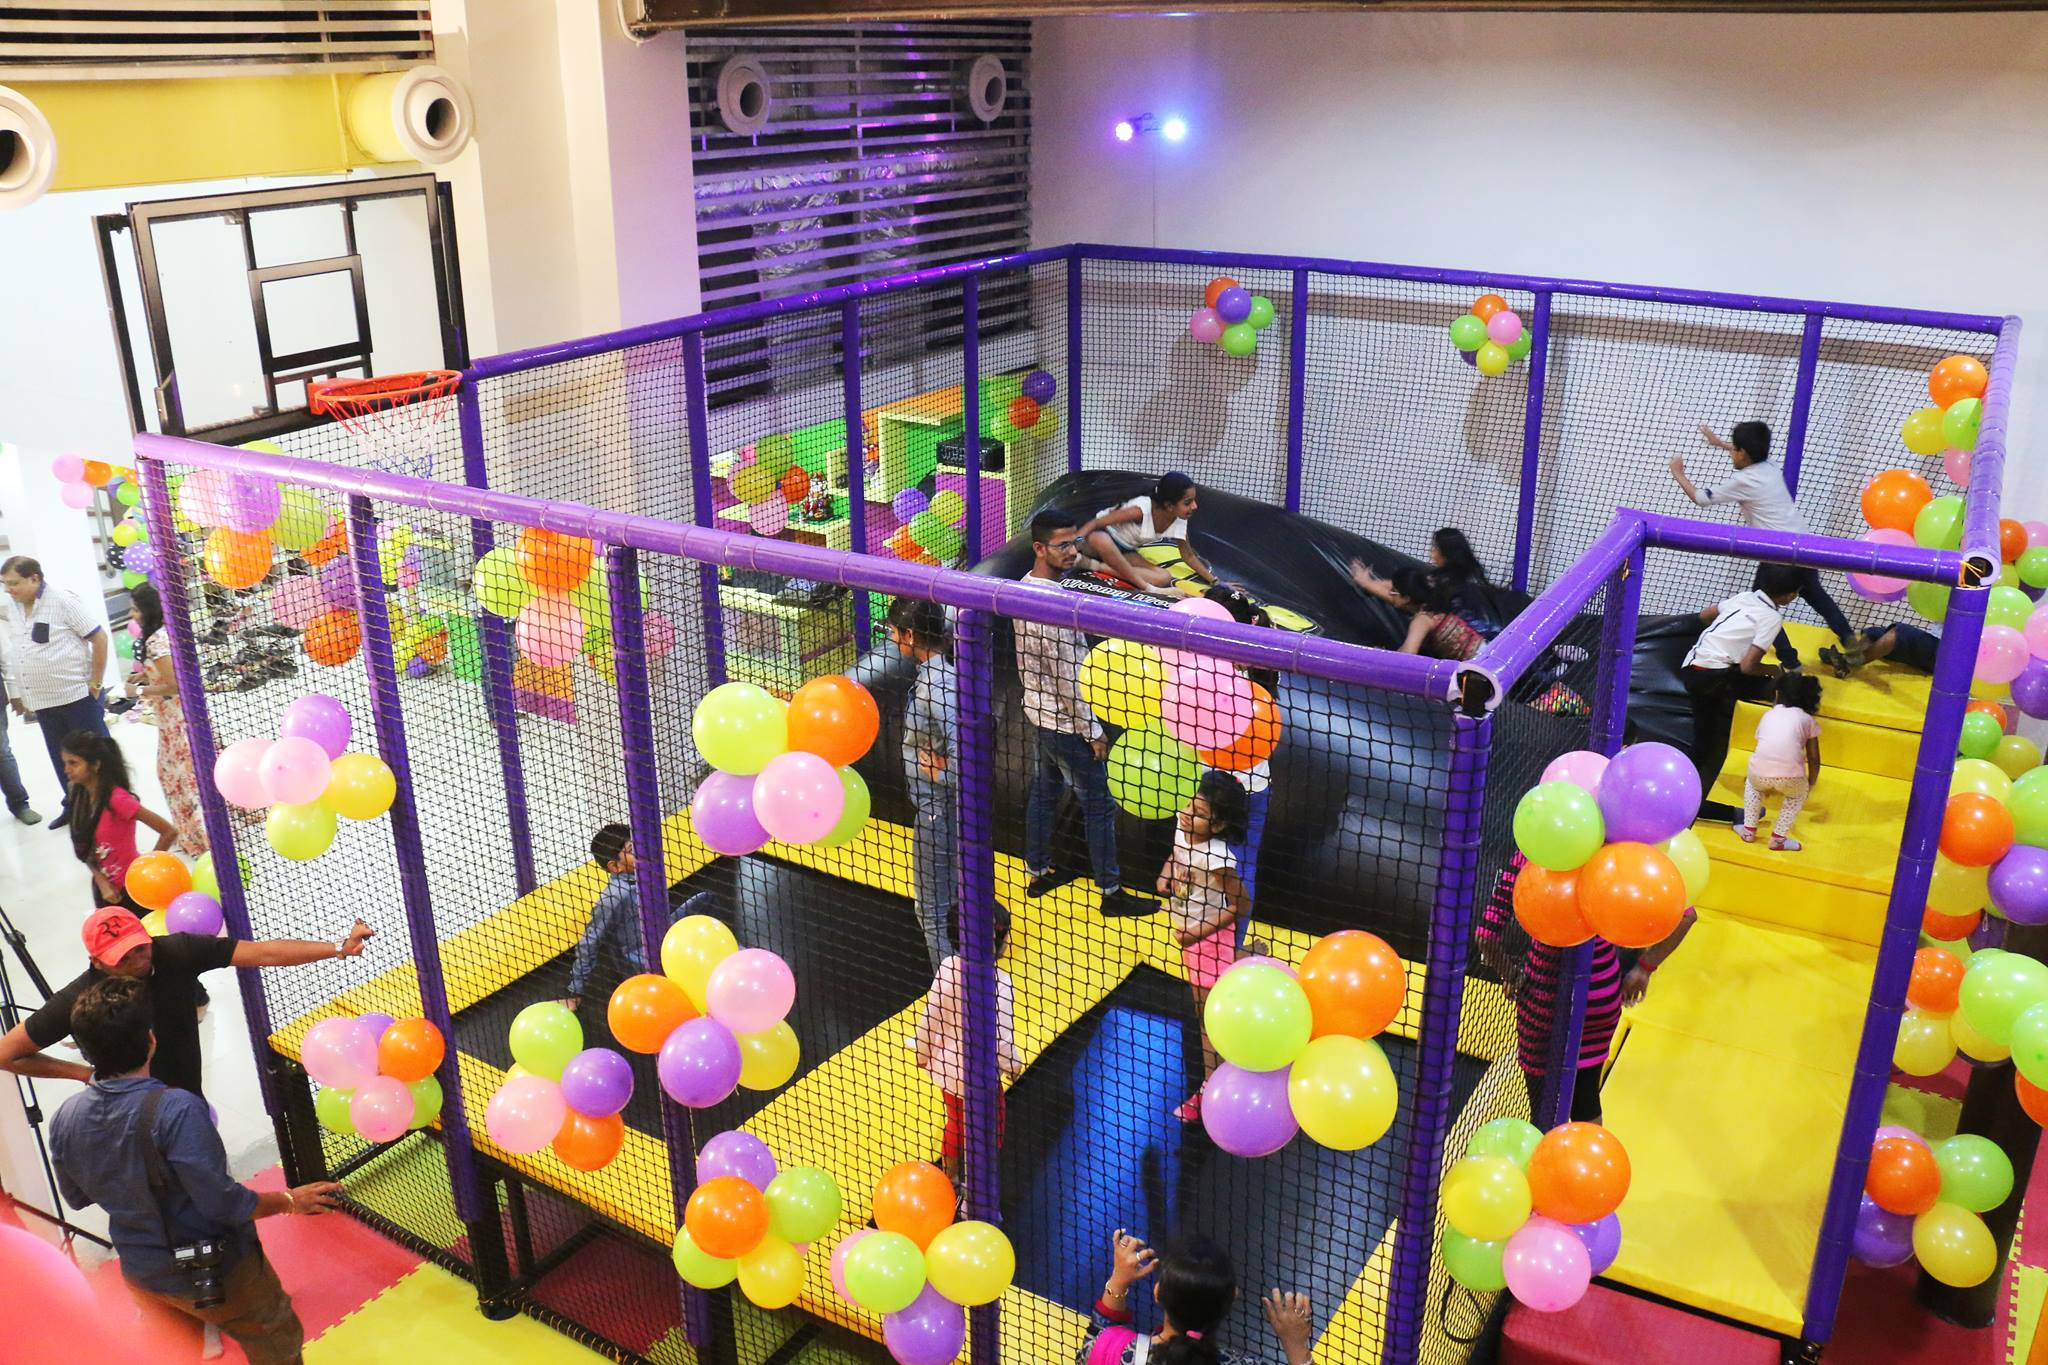 A new kids indoor play center project in india mich for Kids bed with play area